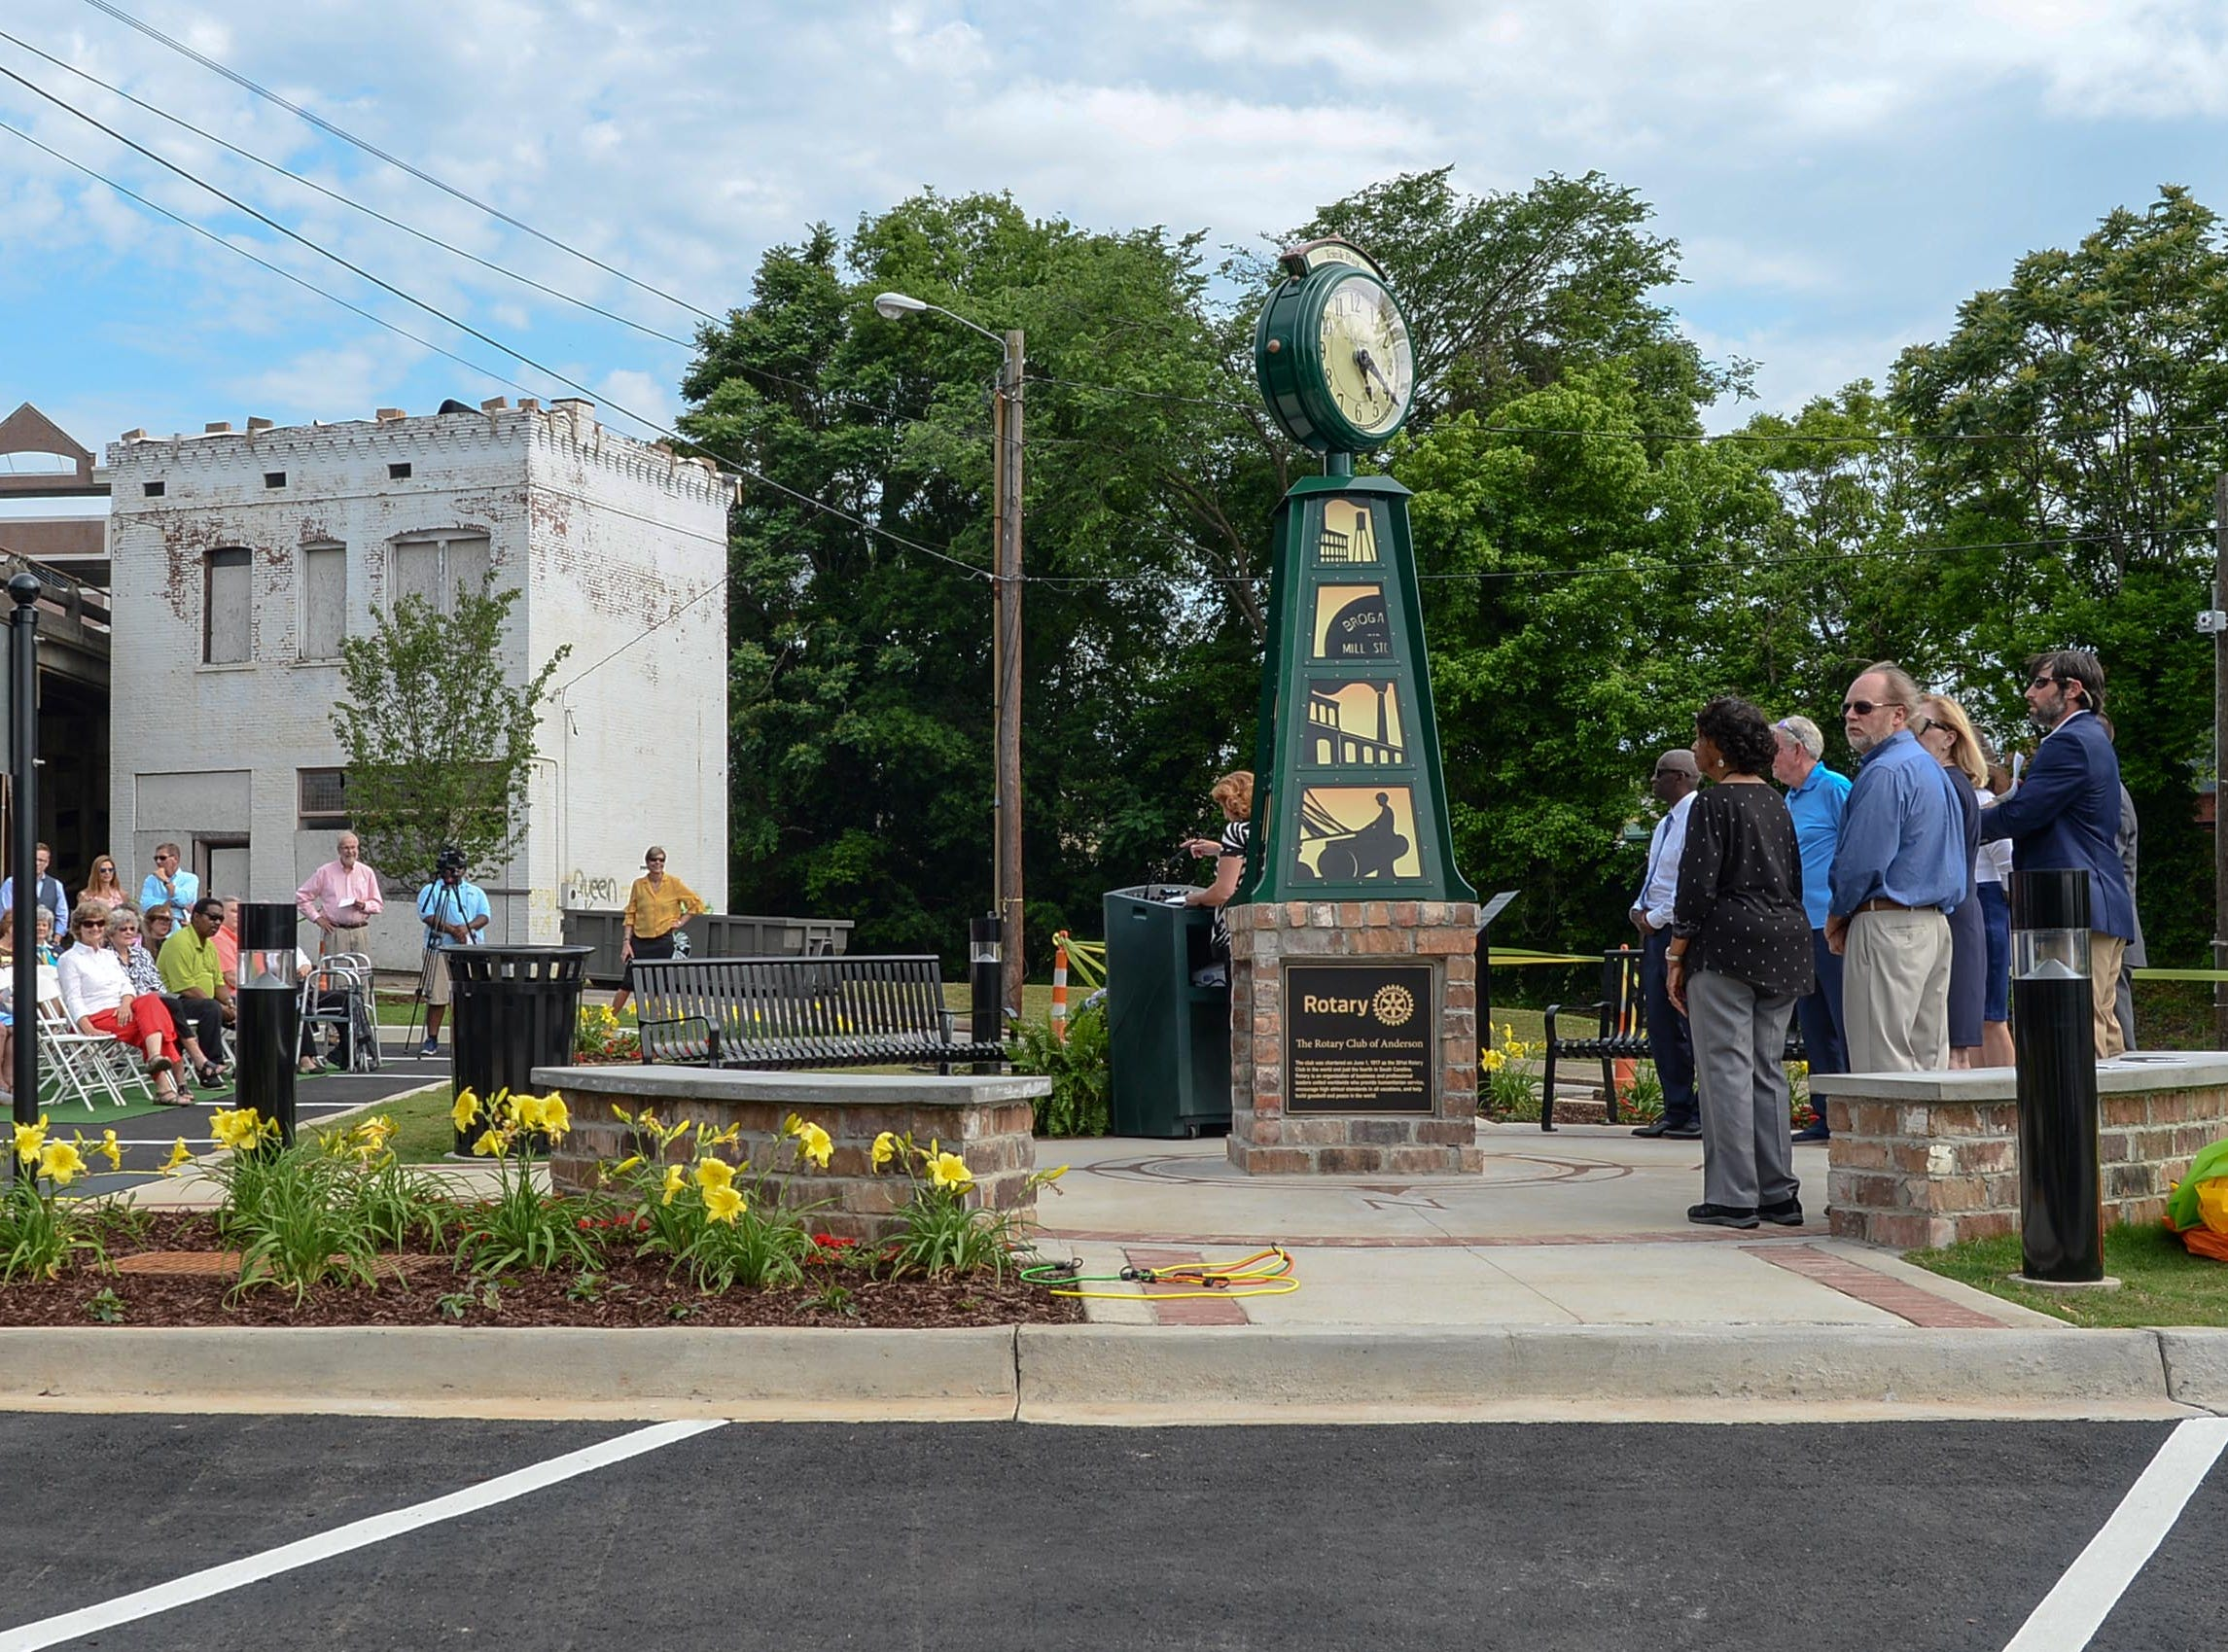 Anderson officials helped unveil the Under the bridge project called Textile Point in downtown Anderson Thursday, May 9, 2019. Scott Foster of Anderson designed the monument honoring years of textile mills in Anderson, with support partners from To Benefit Anderson, South Carolina Heritage Corridor, the Rotary Club of Anderson, and the City of Anderson.